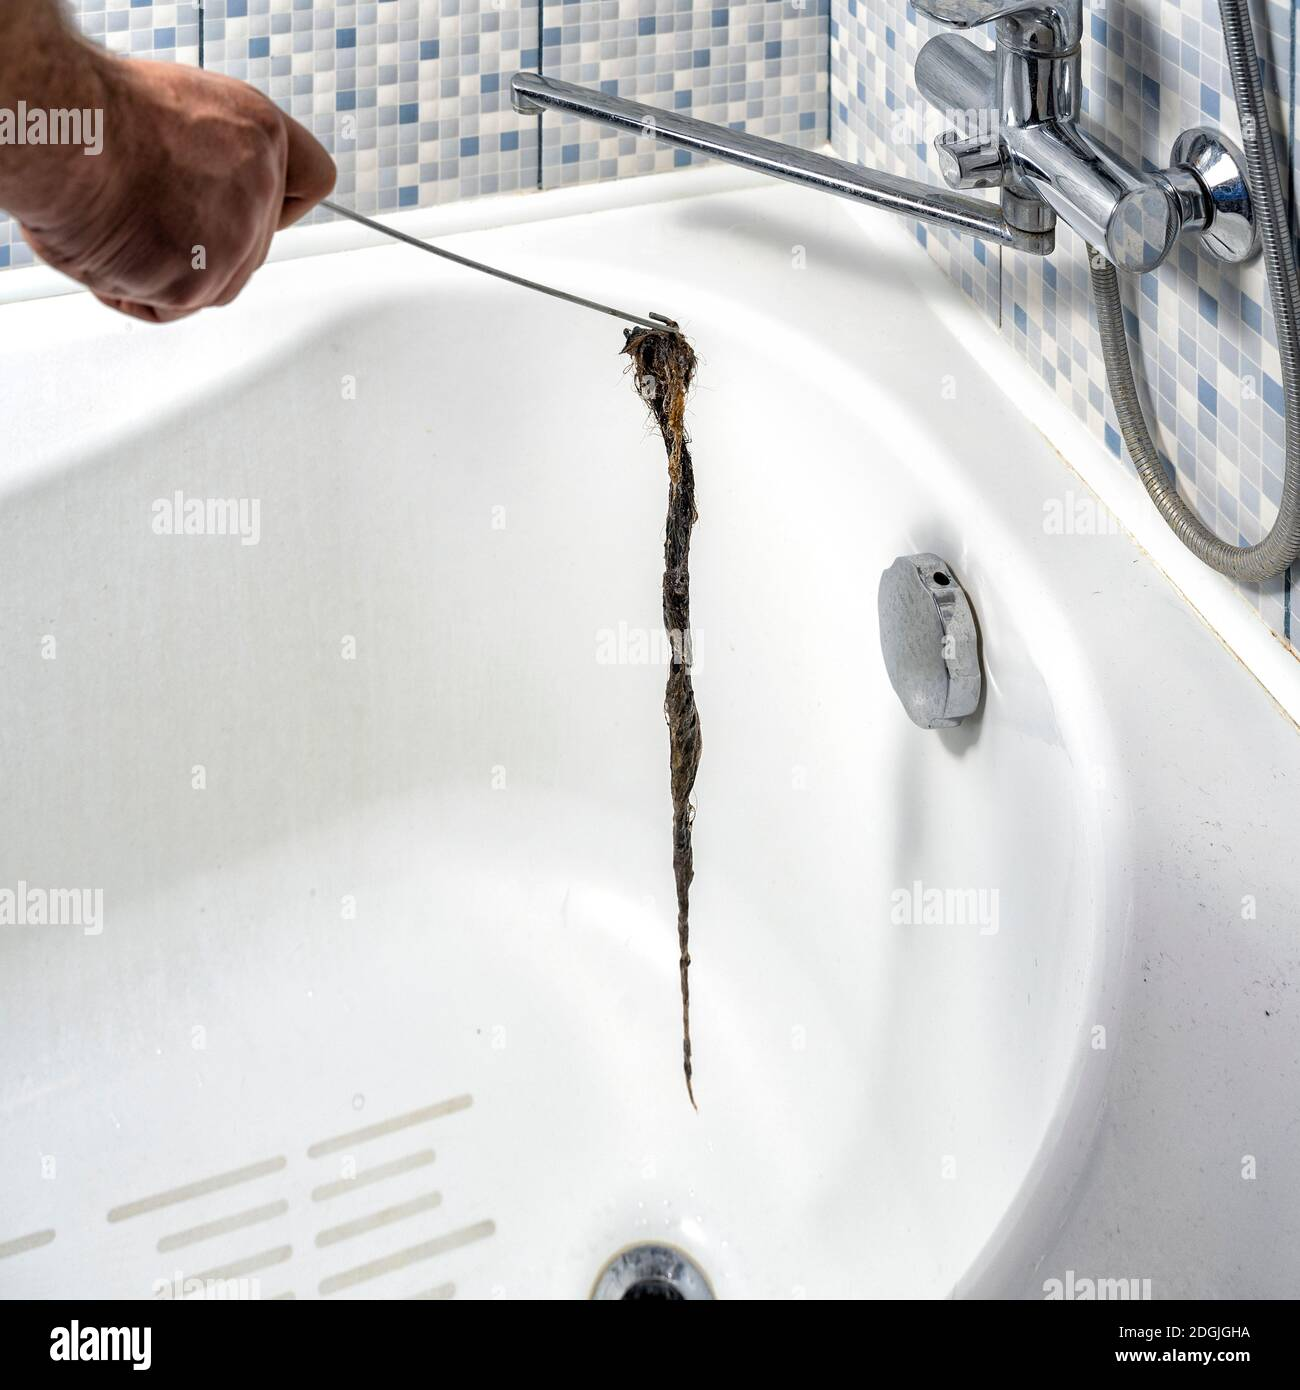 Clogged Drain In The Bathroom A Plumber Pulls Out A Clot Of Dirt With A Tool Stock Photo Alamy